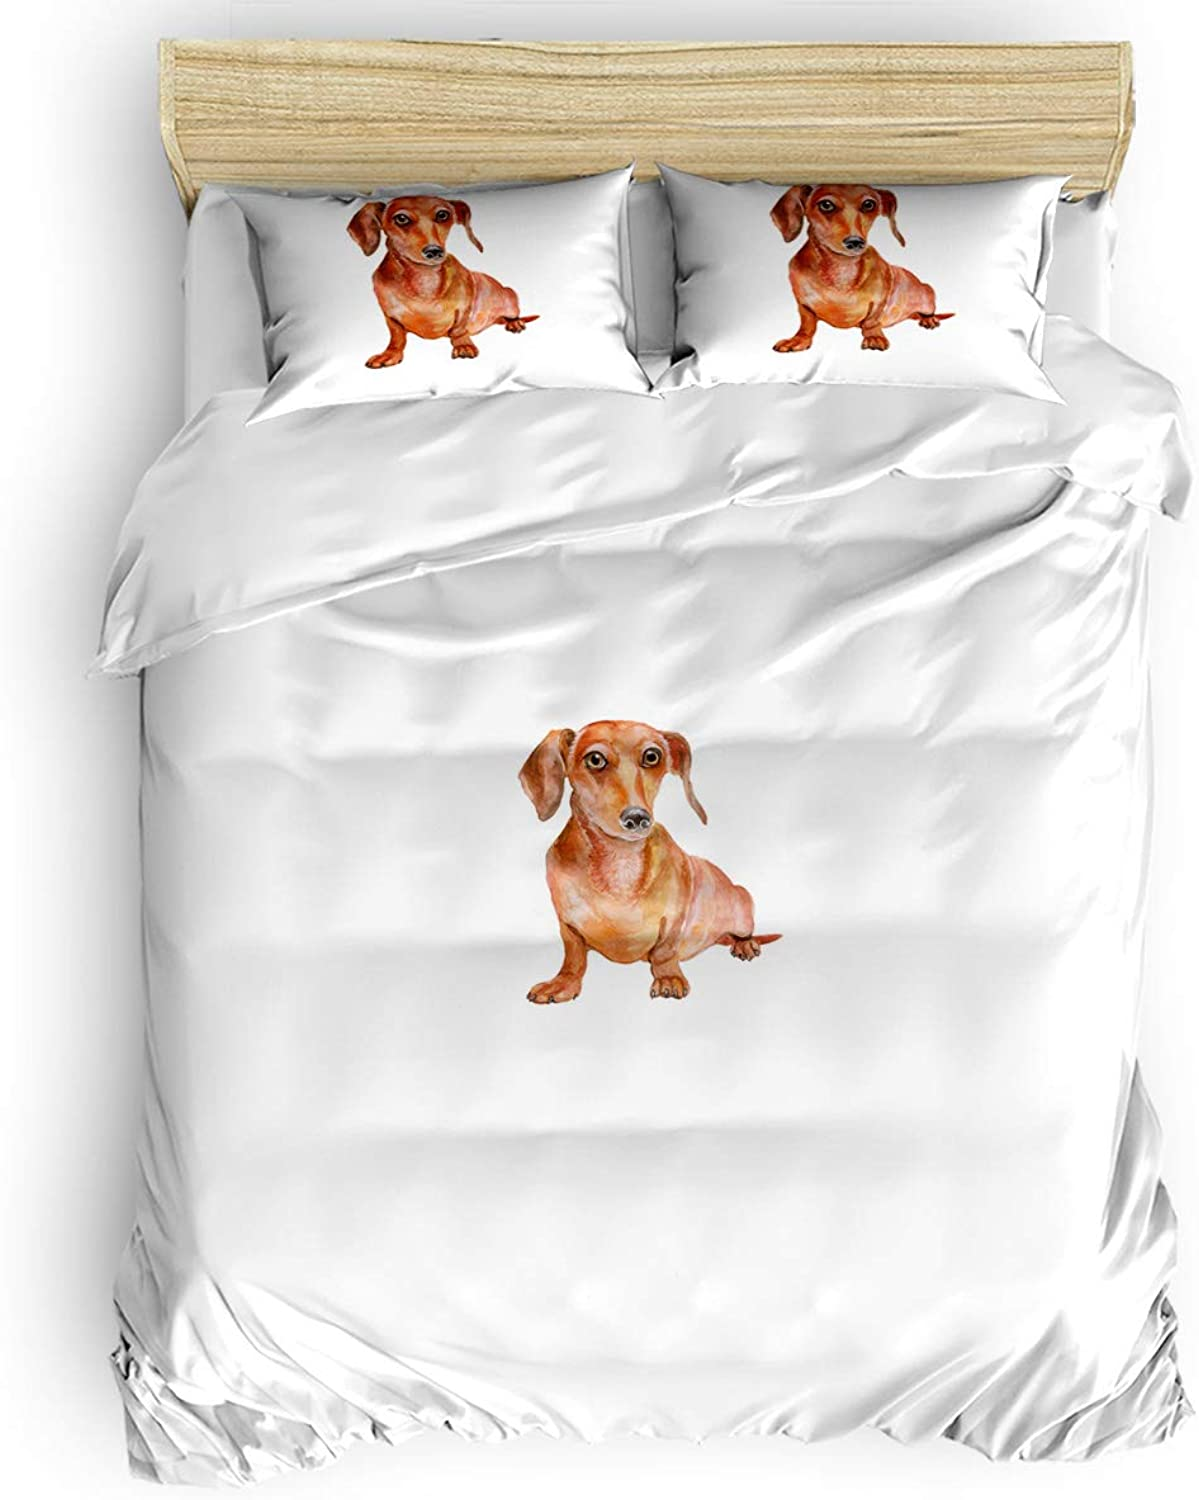 Fandim Fly Bedding Set King Size, Cartoon Style Print Cute Domestic Dog Pets in Watercolors Comforter Cover Sets for All Season